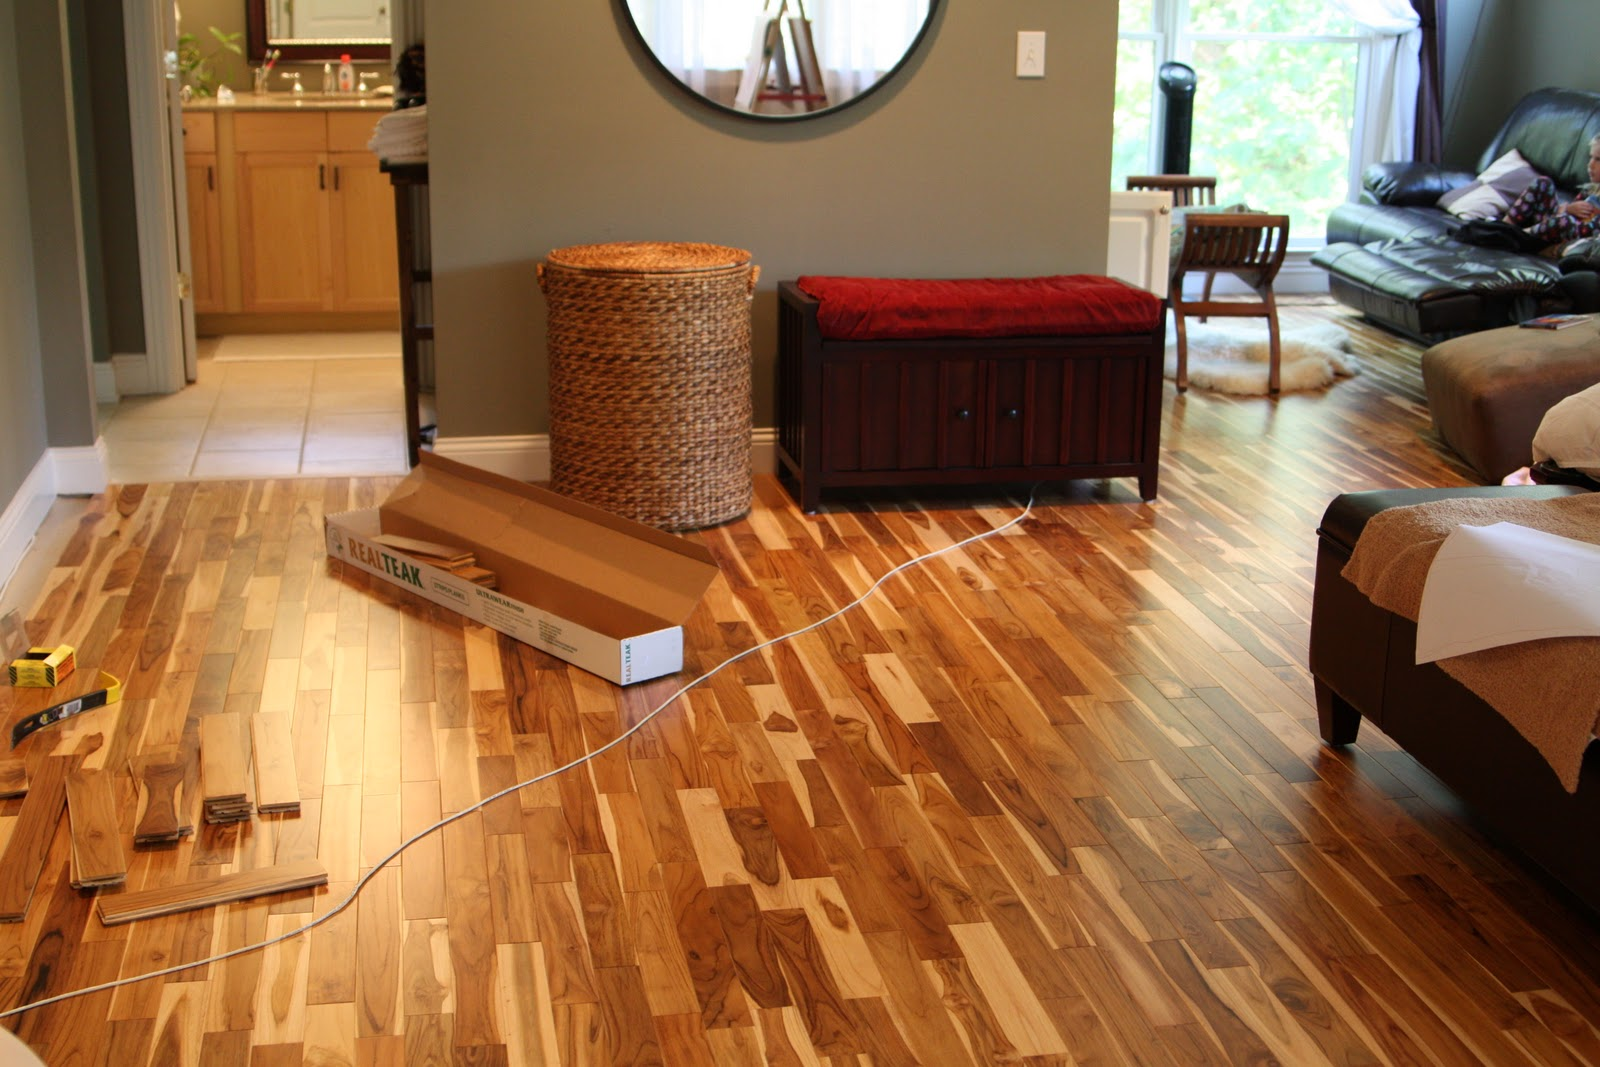 Master bedroom hardwood flooring is nearly finished for Wood flooring for bedrooms